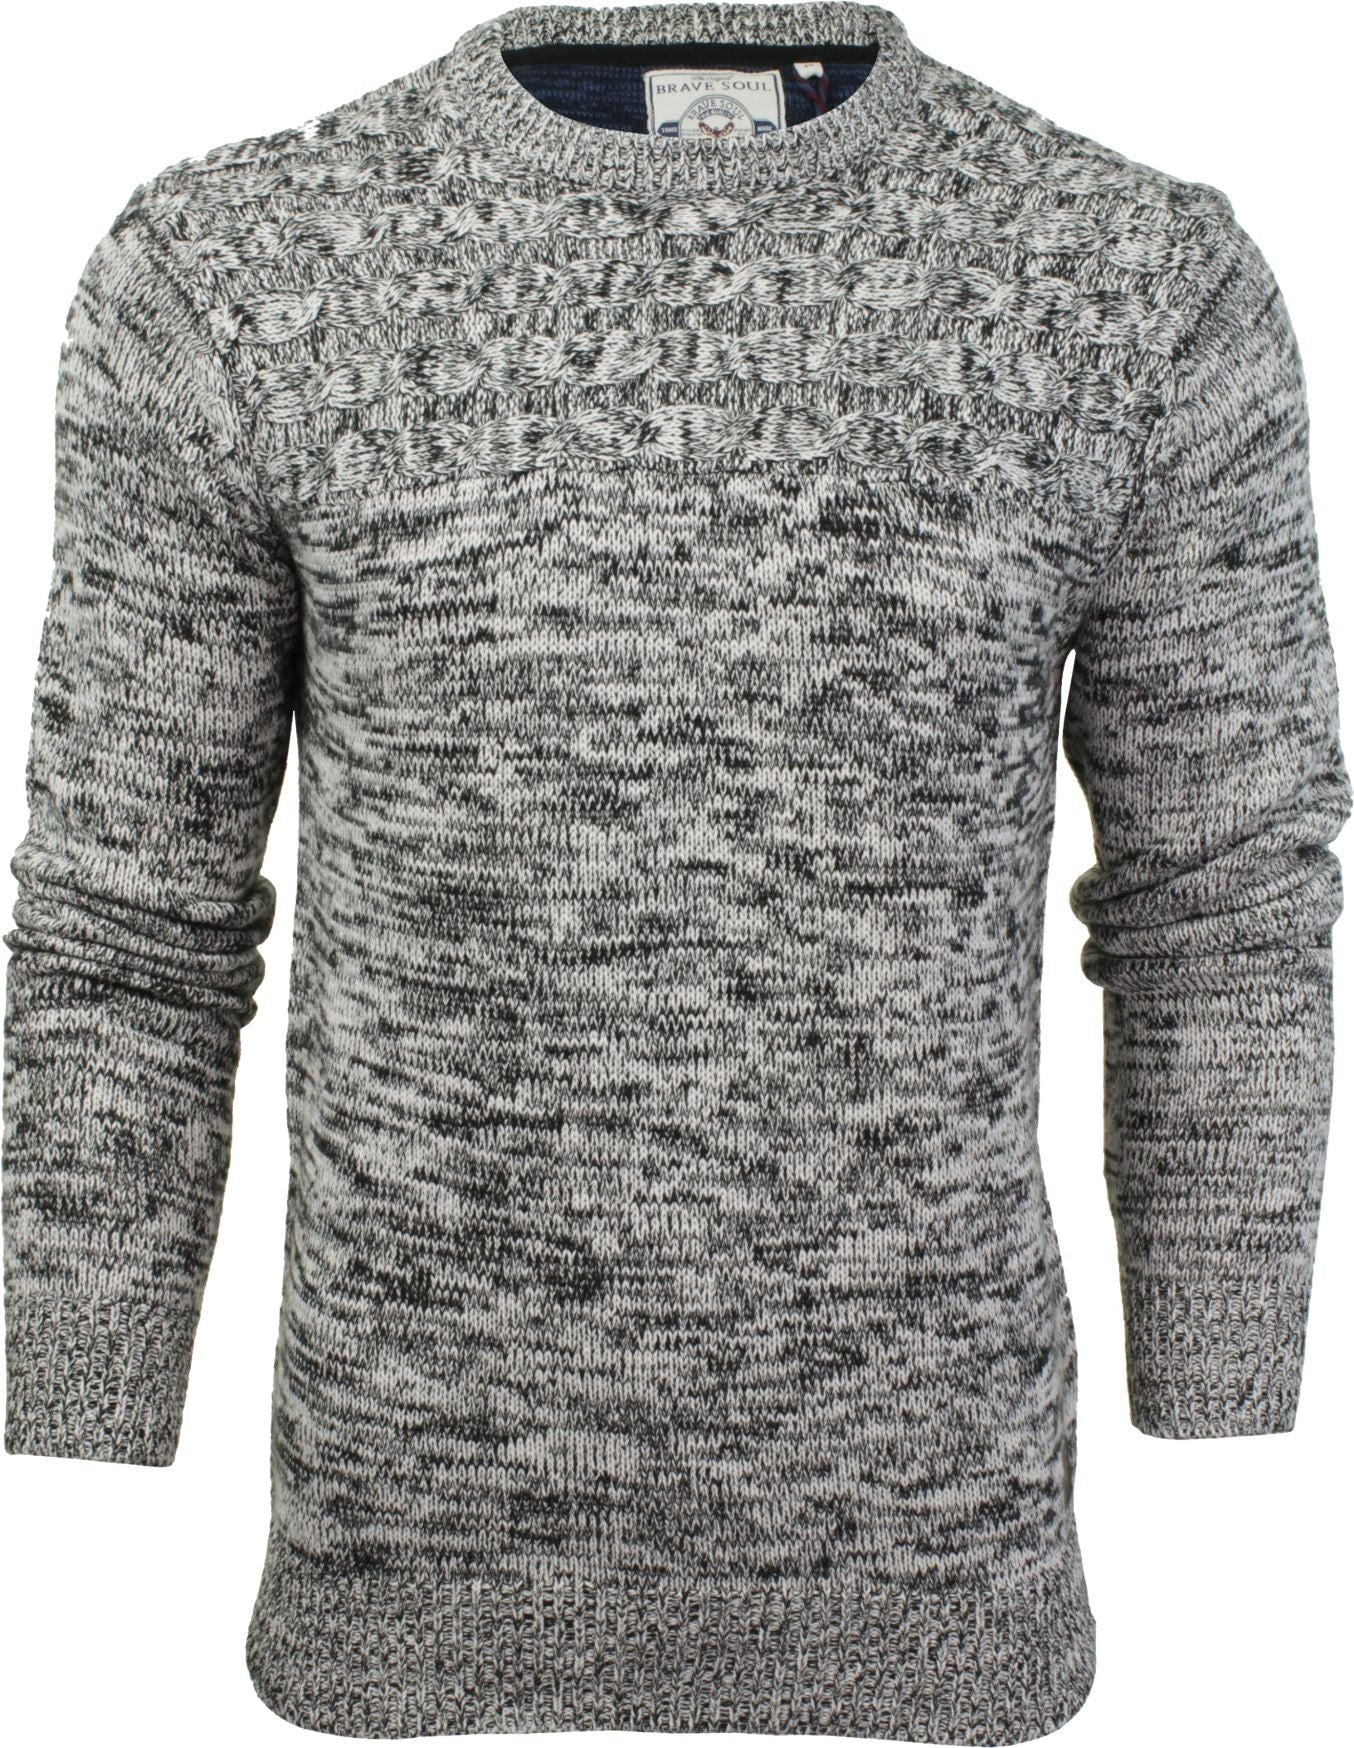 Mens Crew Neck Jumper by Brave Soul-Main Image